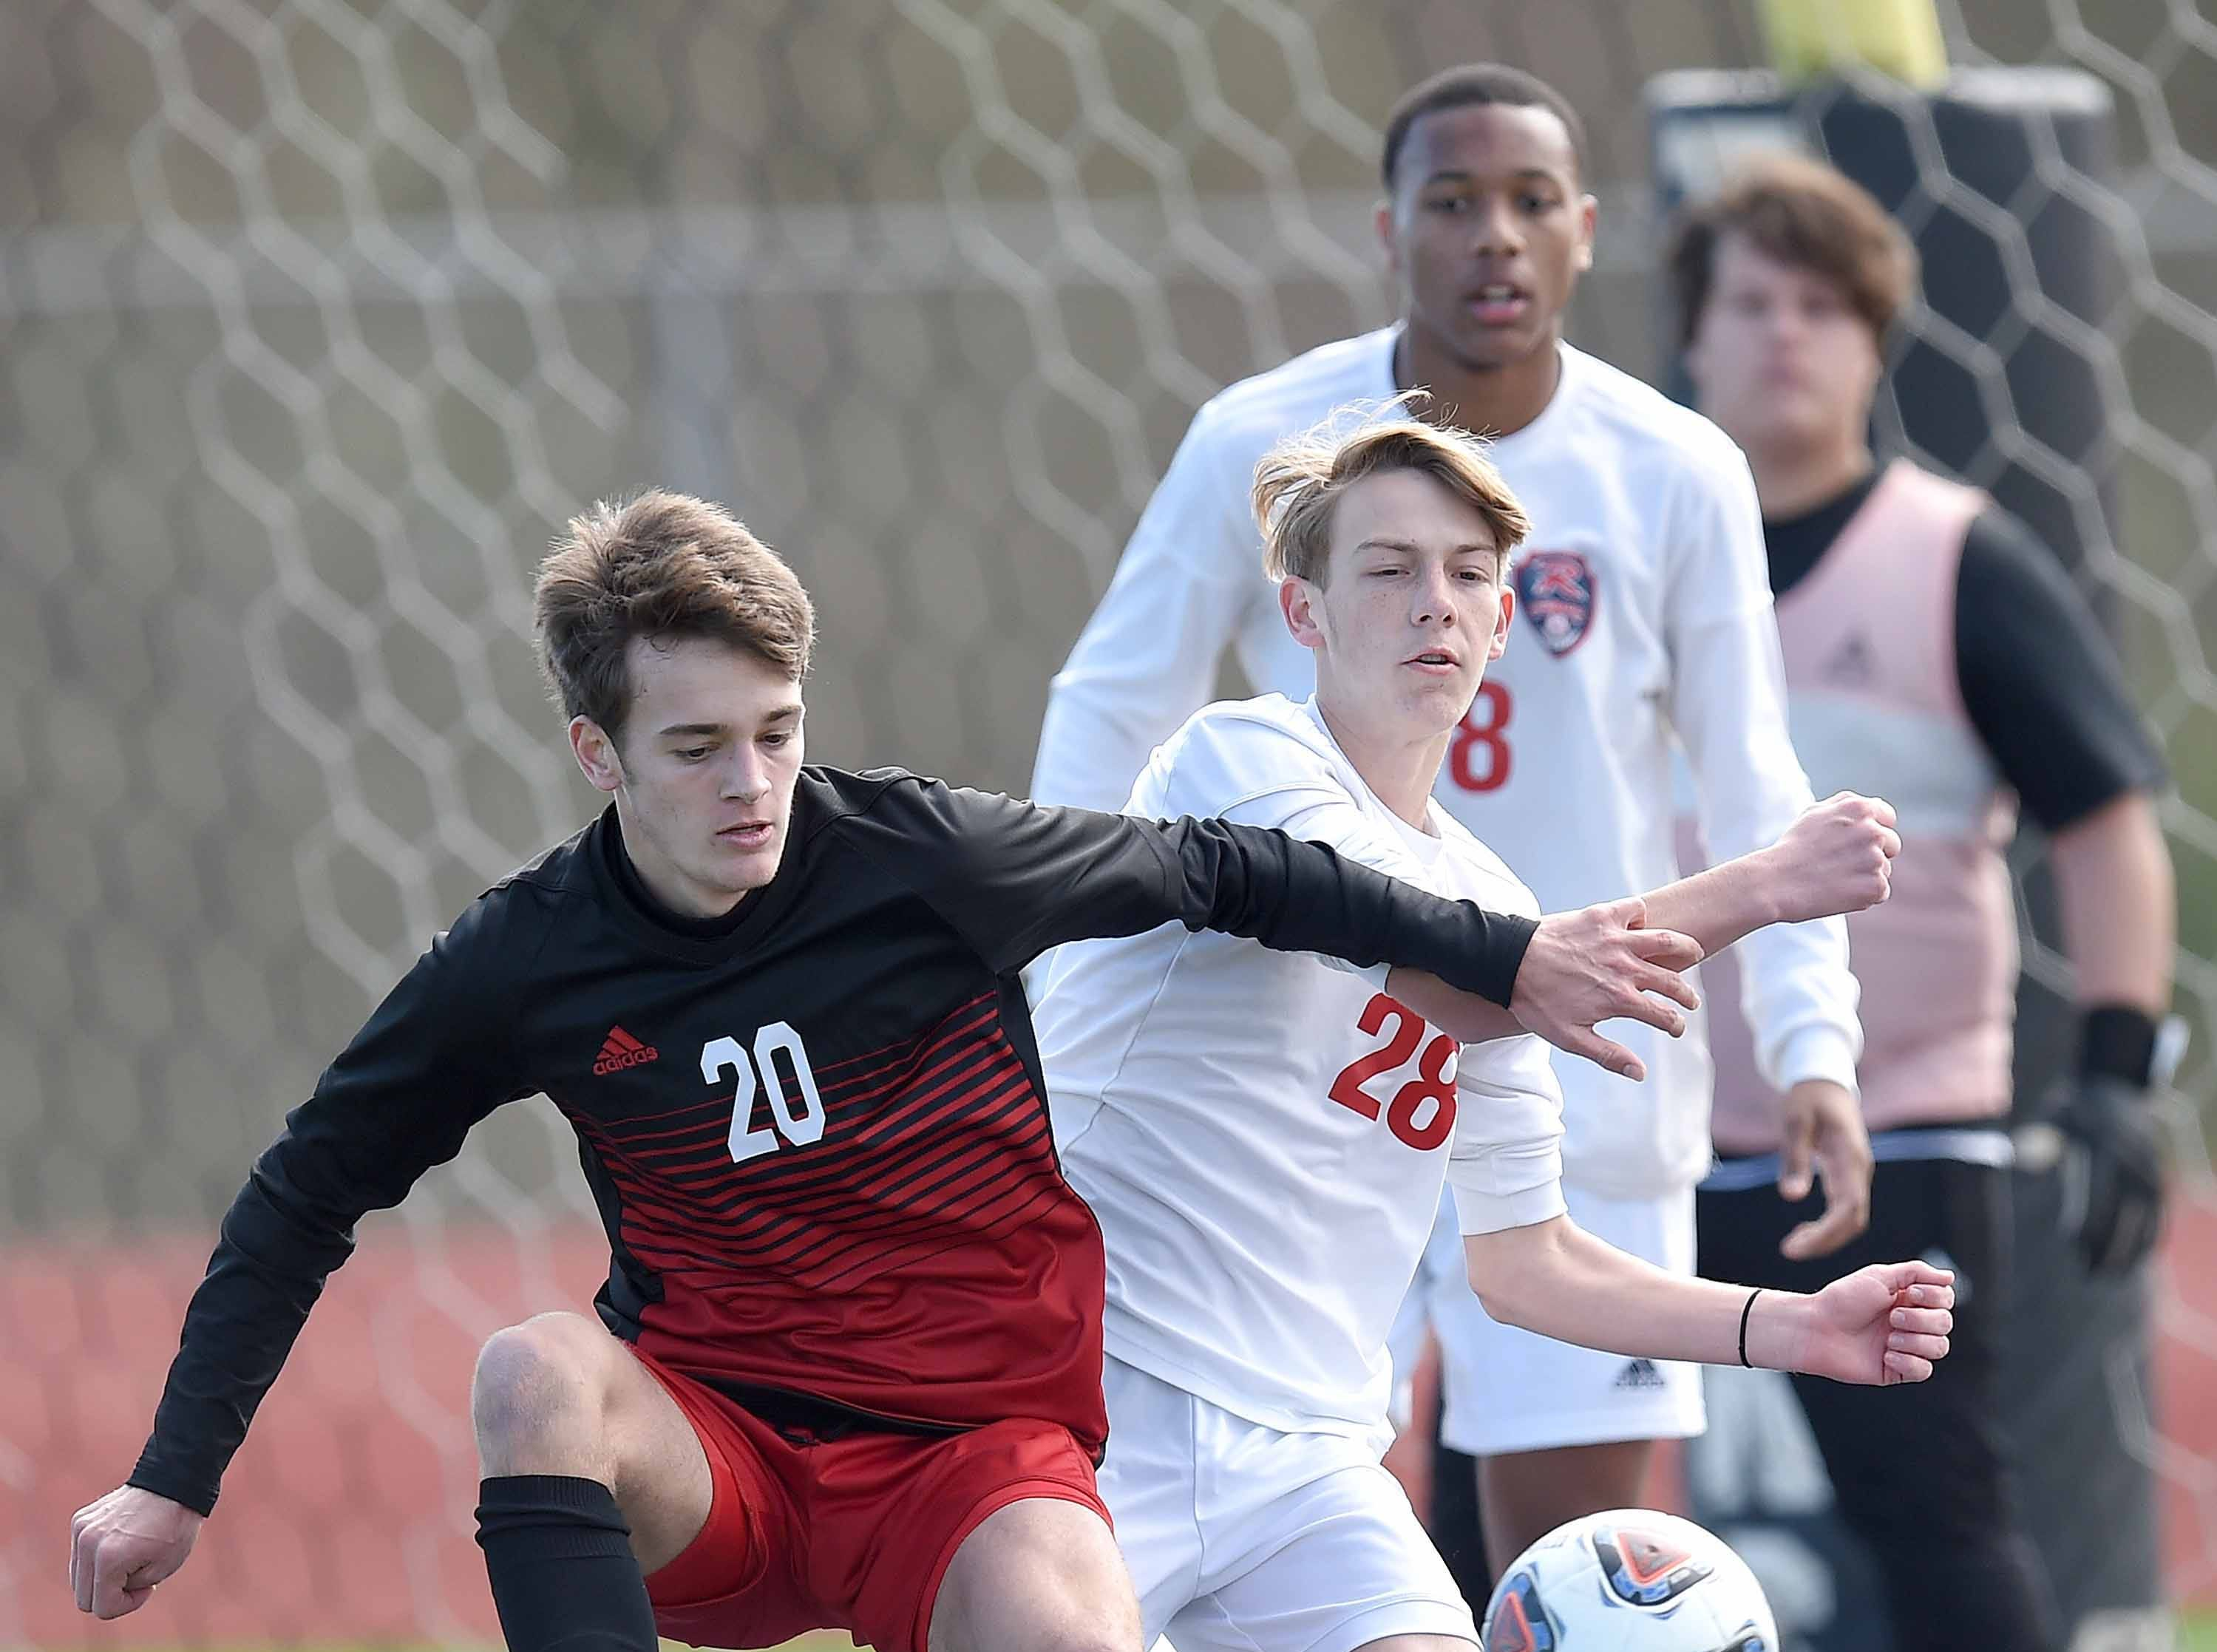 West Lauderdale's Jack Green (20) competes for a ball against Richland's Thomas Roberts (28) in the Class 4A state championship in the MHSAA BlueCross Blue Shield of Mississippi Soccer Classic on Saturday, February 9, 2019, at Ridgeland High School in Ridgeland, Miss.